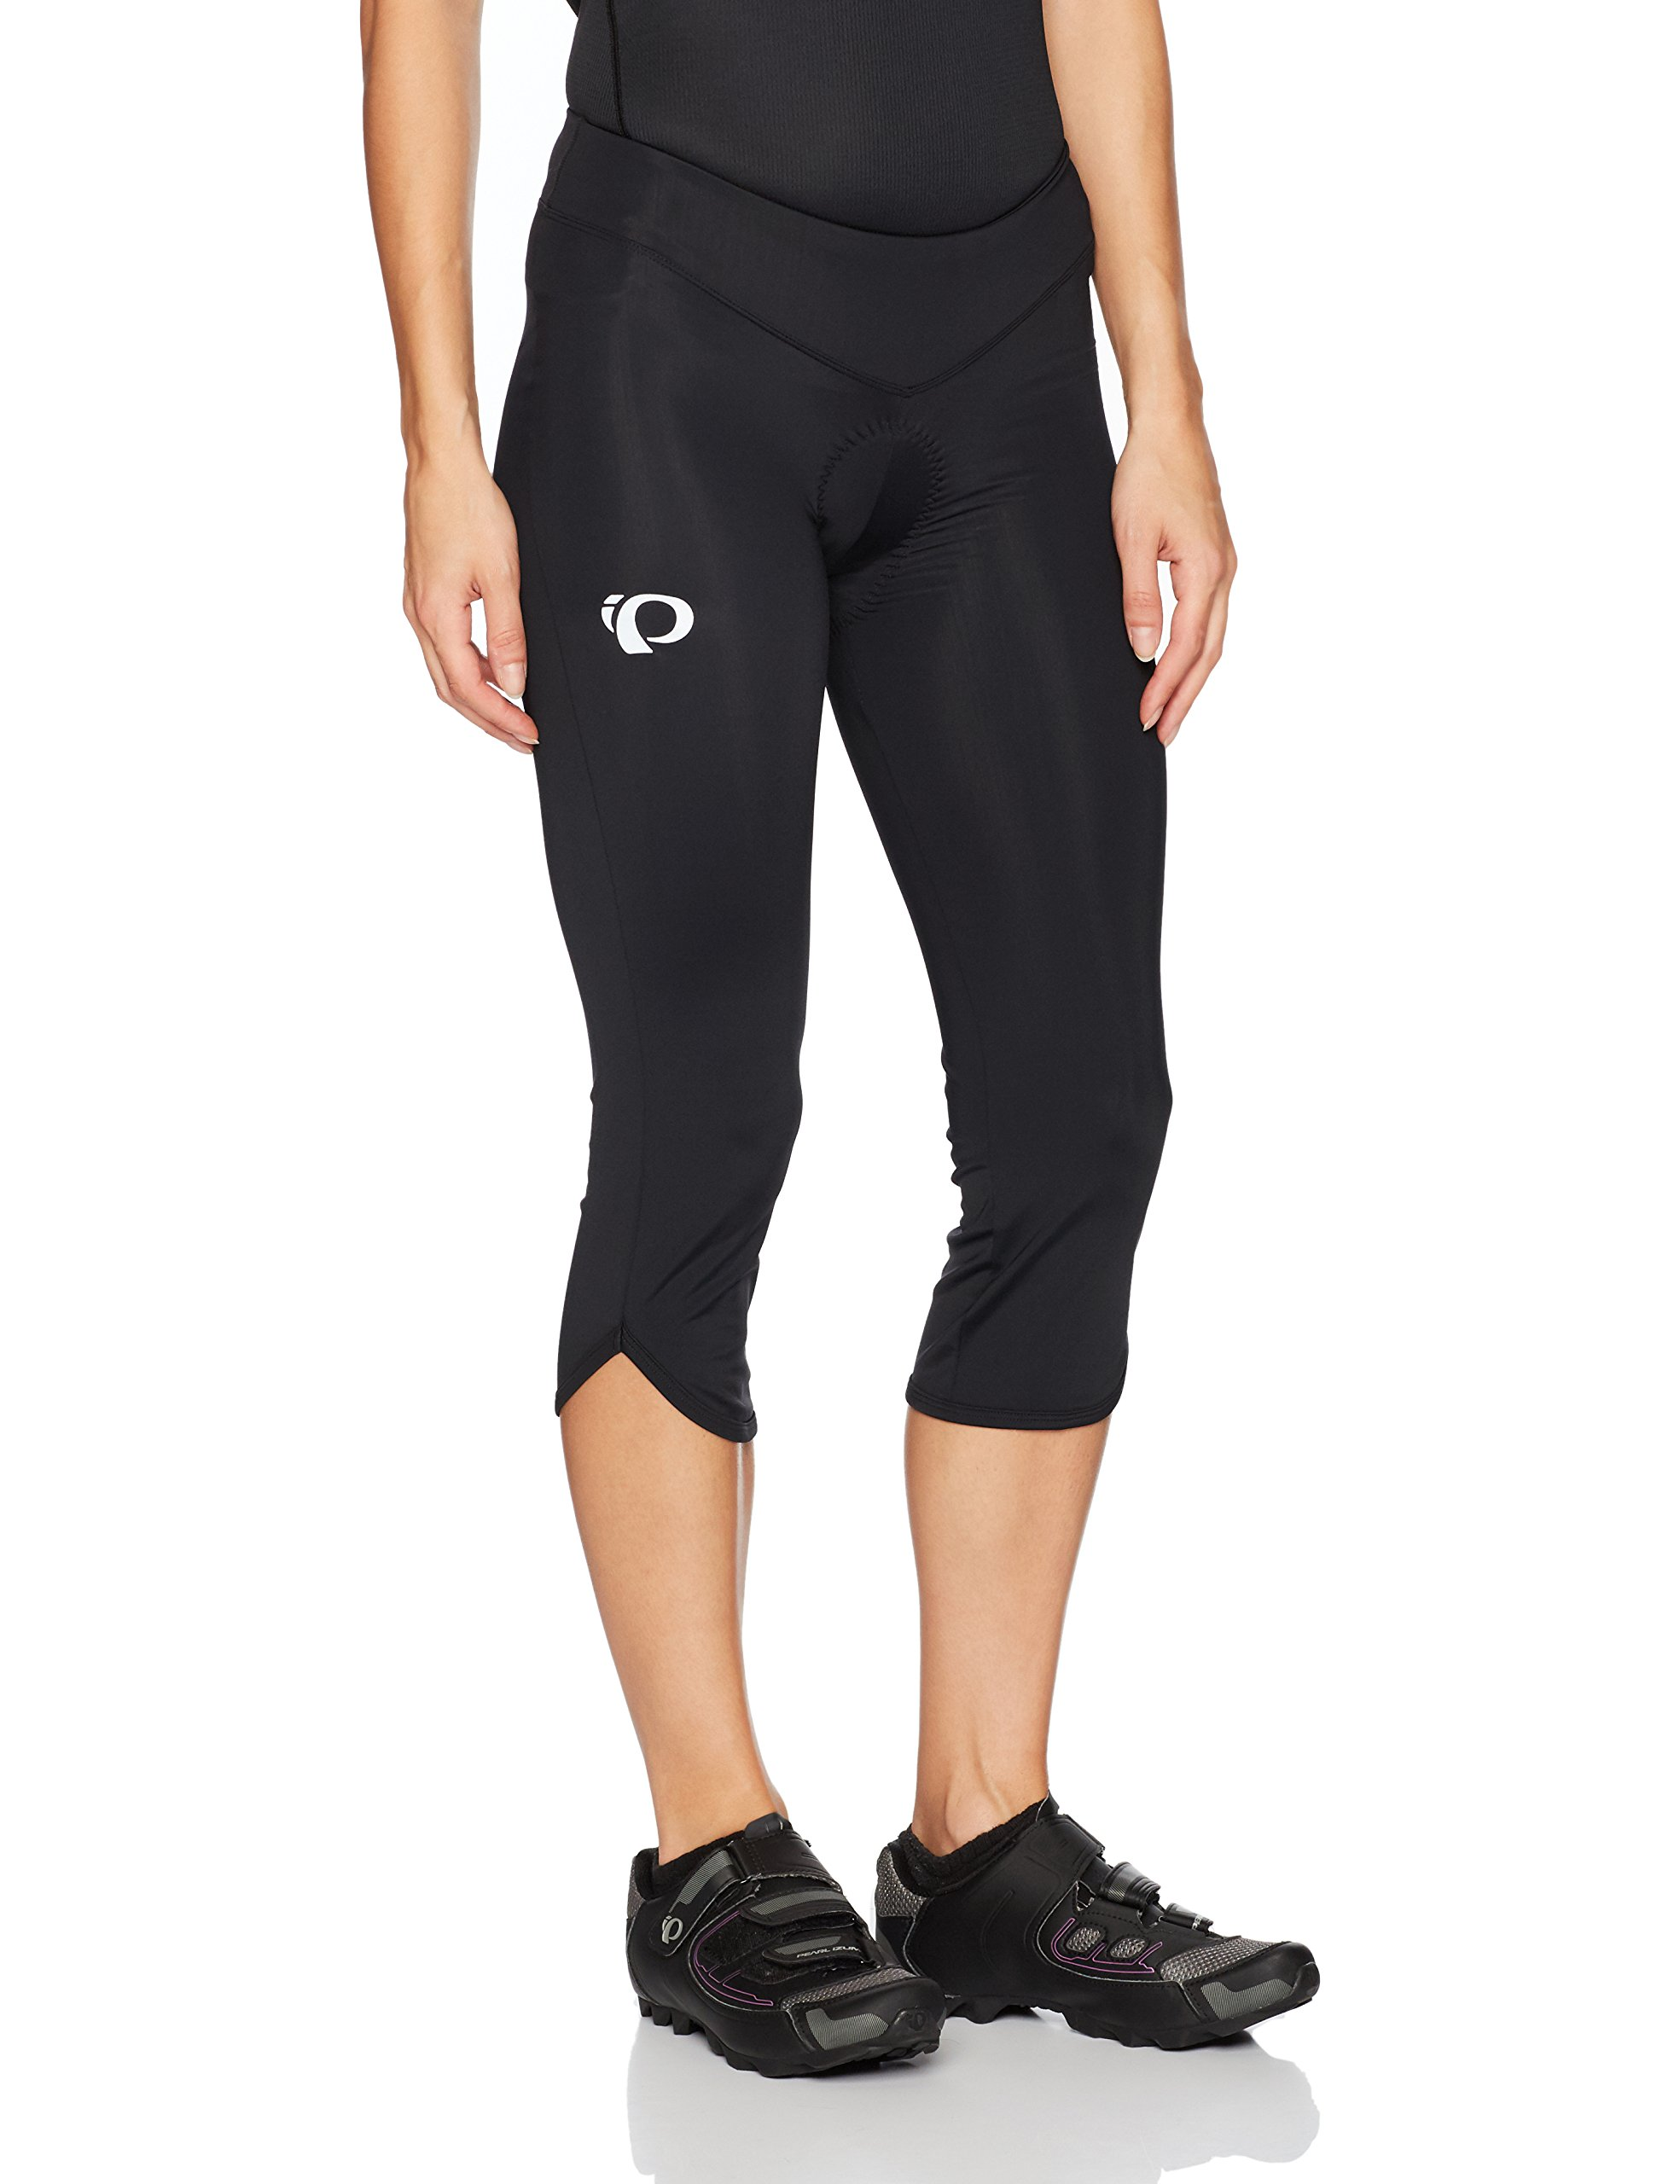 Pearl iZUMi Women's W Select Escape Cycling 3Qtr Tight, Black, Large by Pearl iZUMi